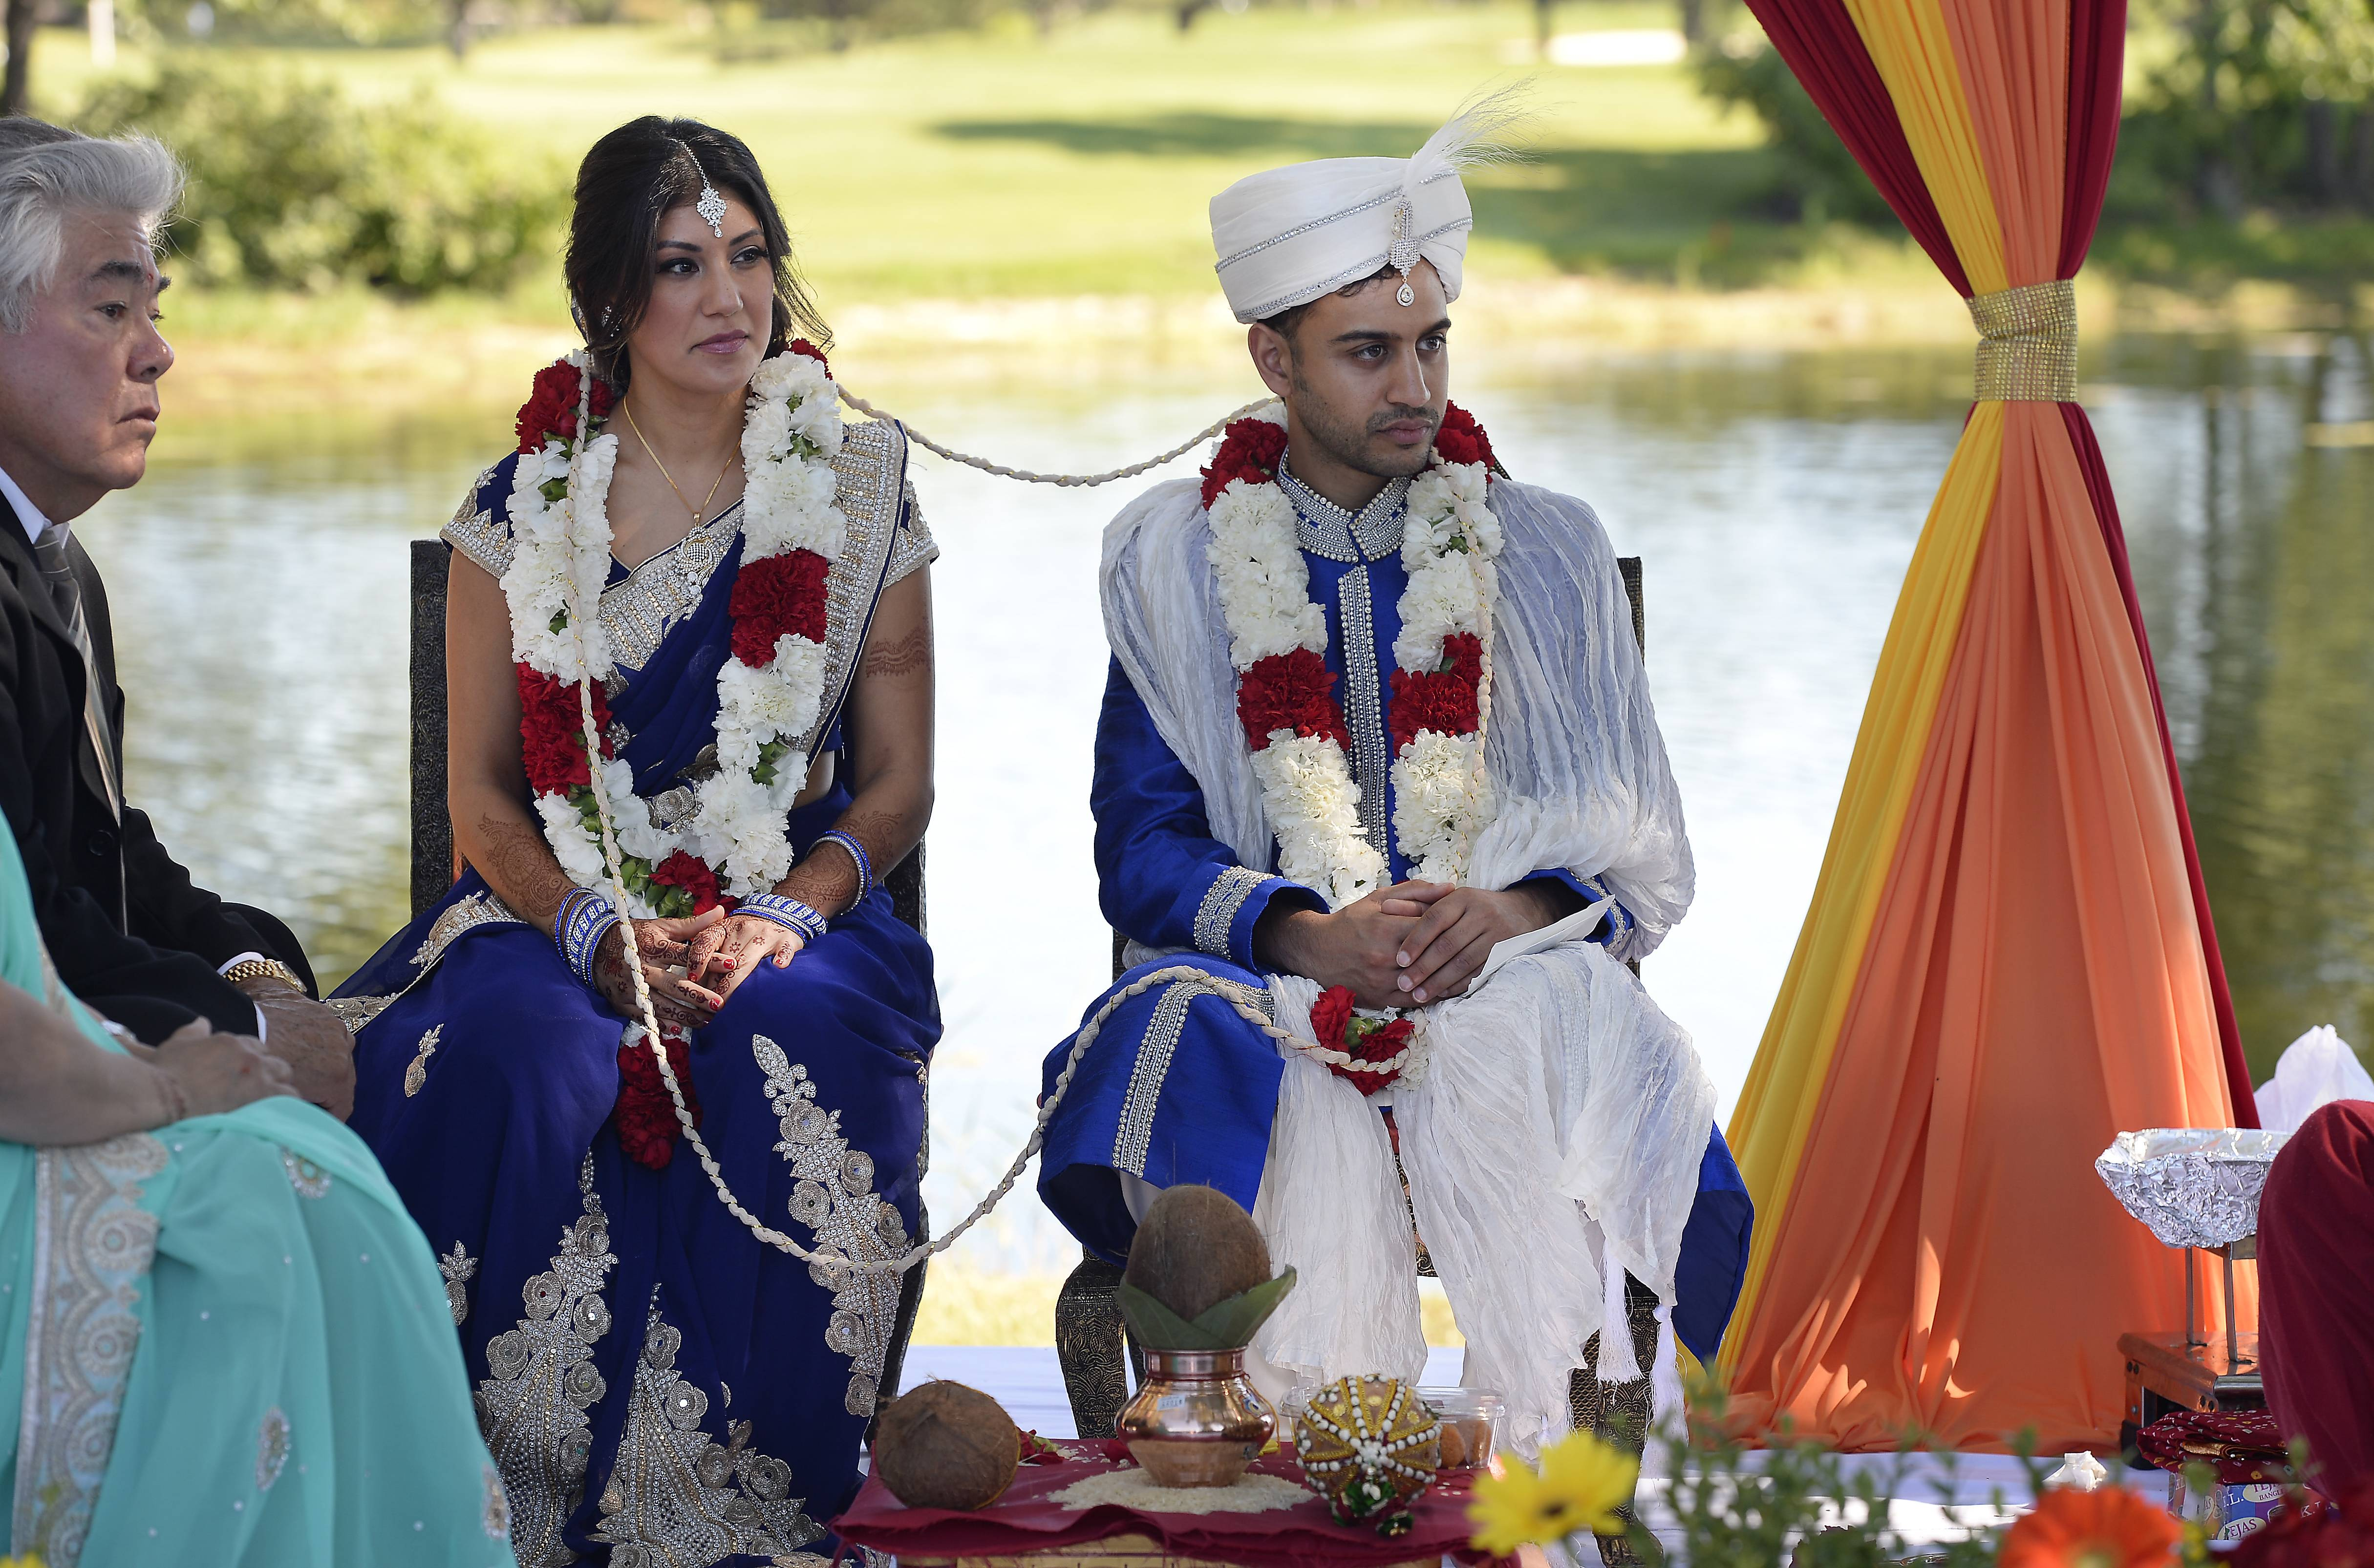 Images: Fusion Indian/Mexican wedding blends cultures